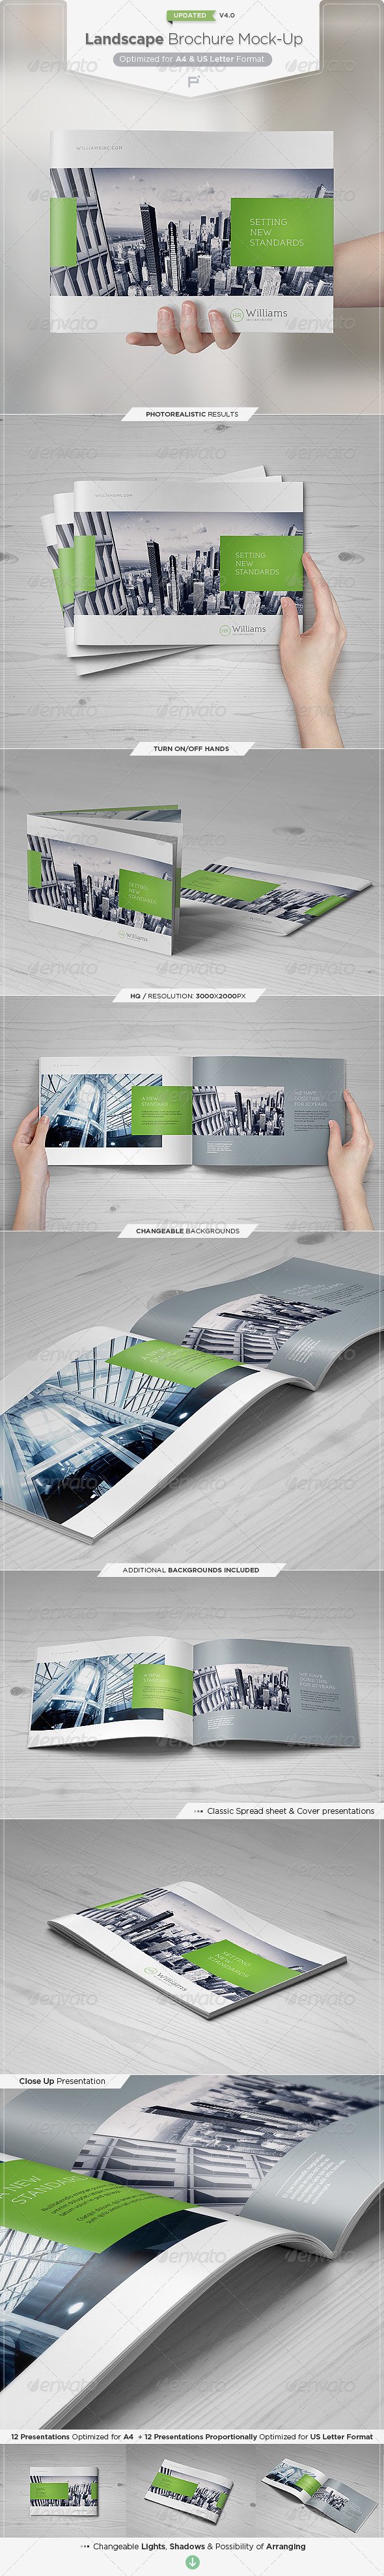 Landscape Brochure Mock-Up Set - Brochures Print